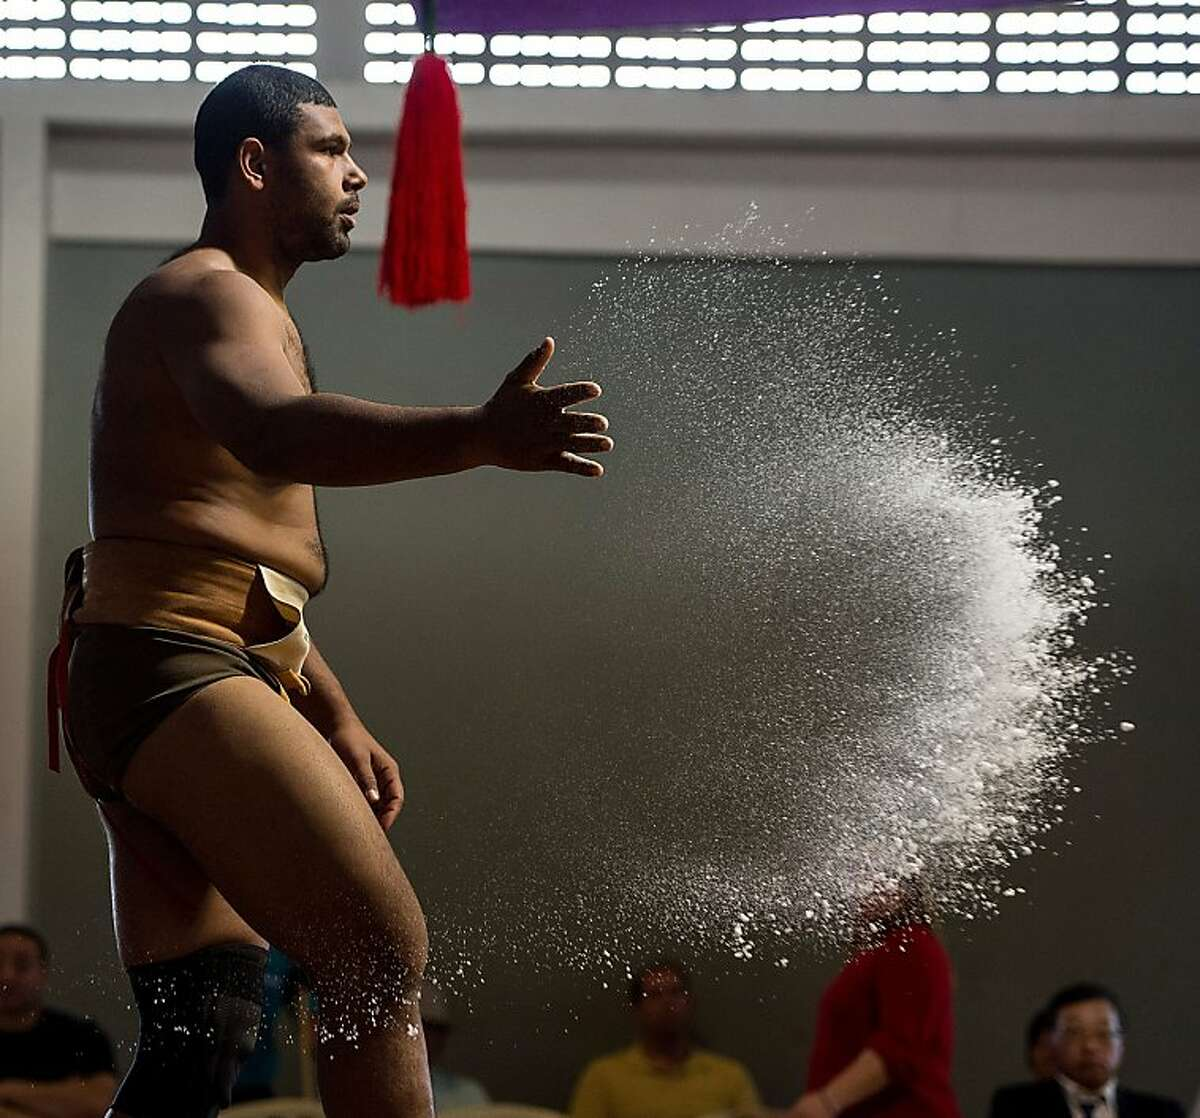 Cassio Gomes of Brazil throws a handful of salt into the ring during the Sumo wrestling South American Championship in Sao Paulo, Brazil, on July 22, 2012. AFP PHOTO/Yasuyoshi CHIBAYASUYOSHI CHIBA/AFP/GettyImages